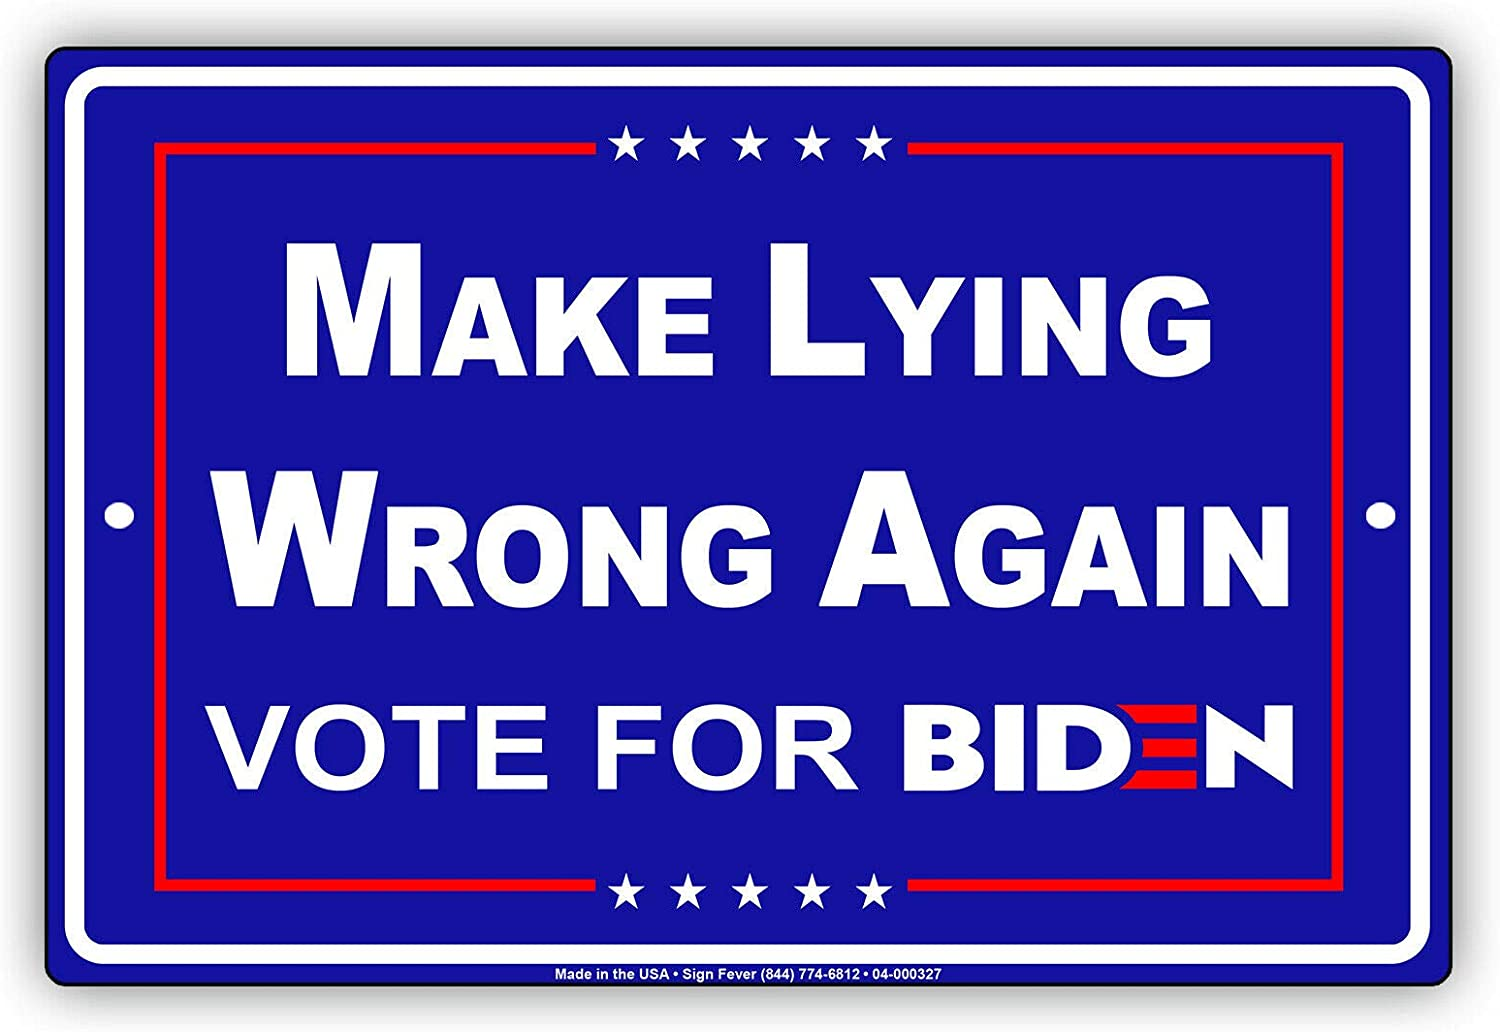 Afterprints Make Lying Wrong Again store Elections USA for Biden Vote It is very popular